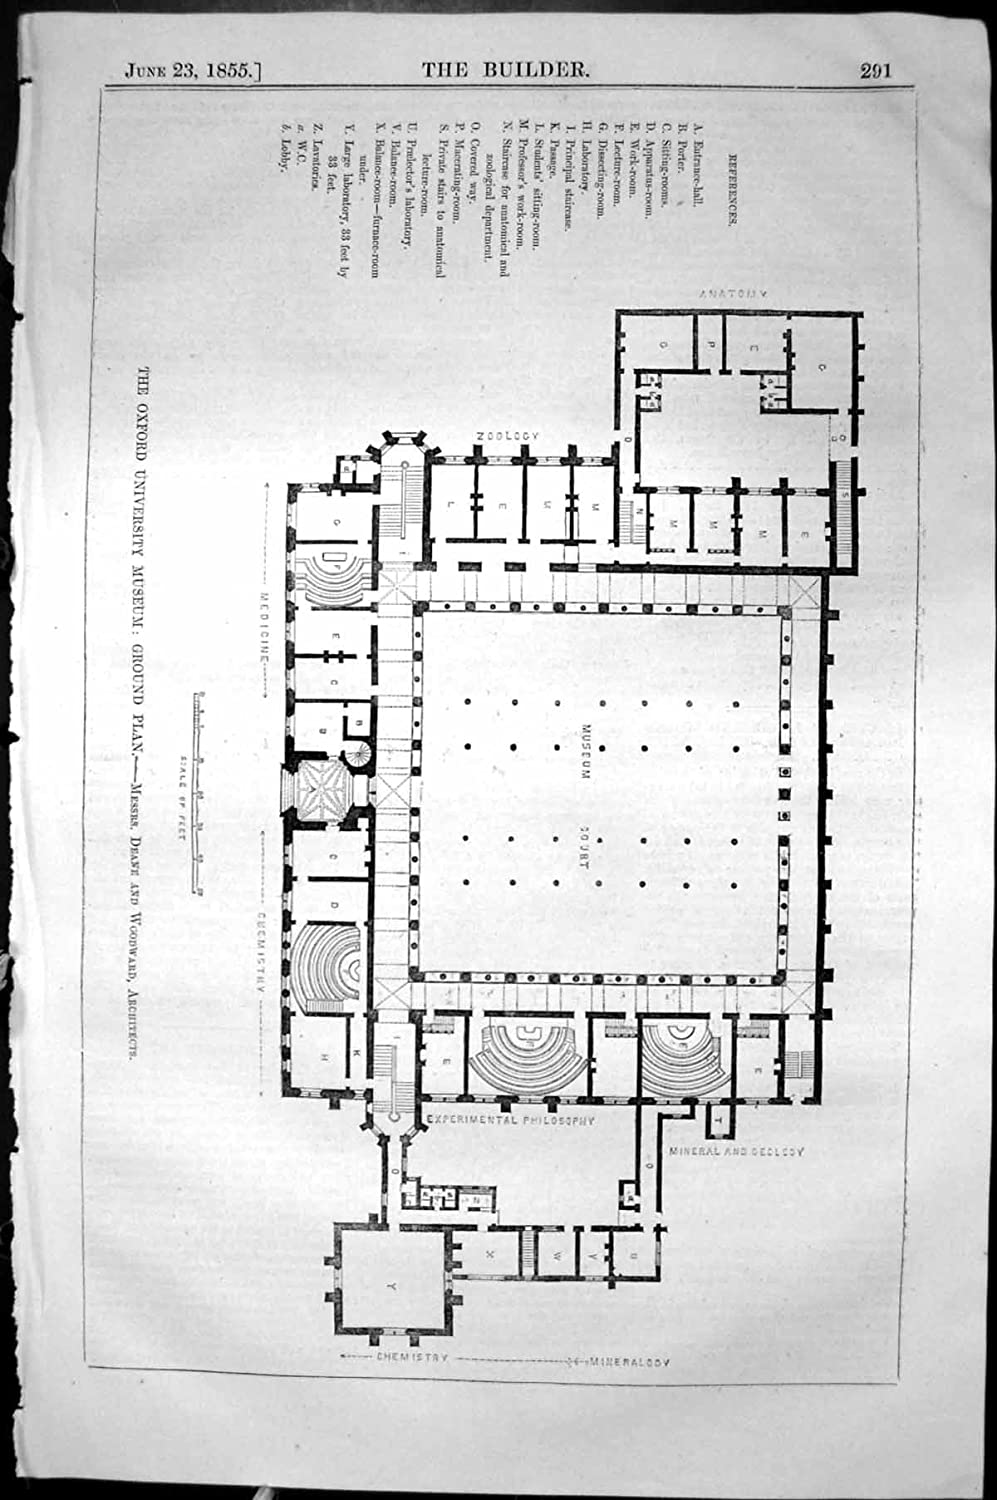 Ground Plan Oxford University Musuem Deane Woodward Chemical Furnace Schematic Architecture 291l113 Prints Posters